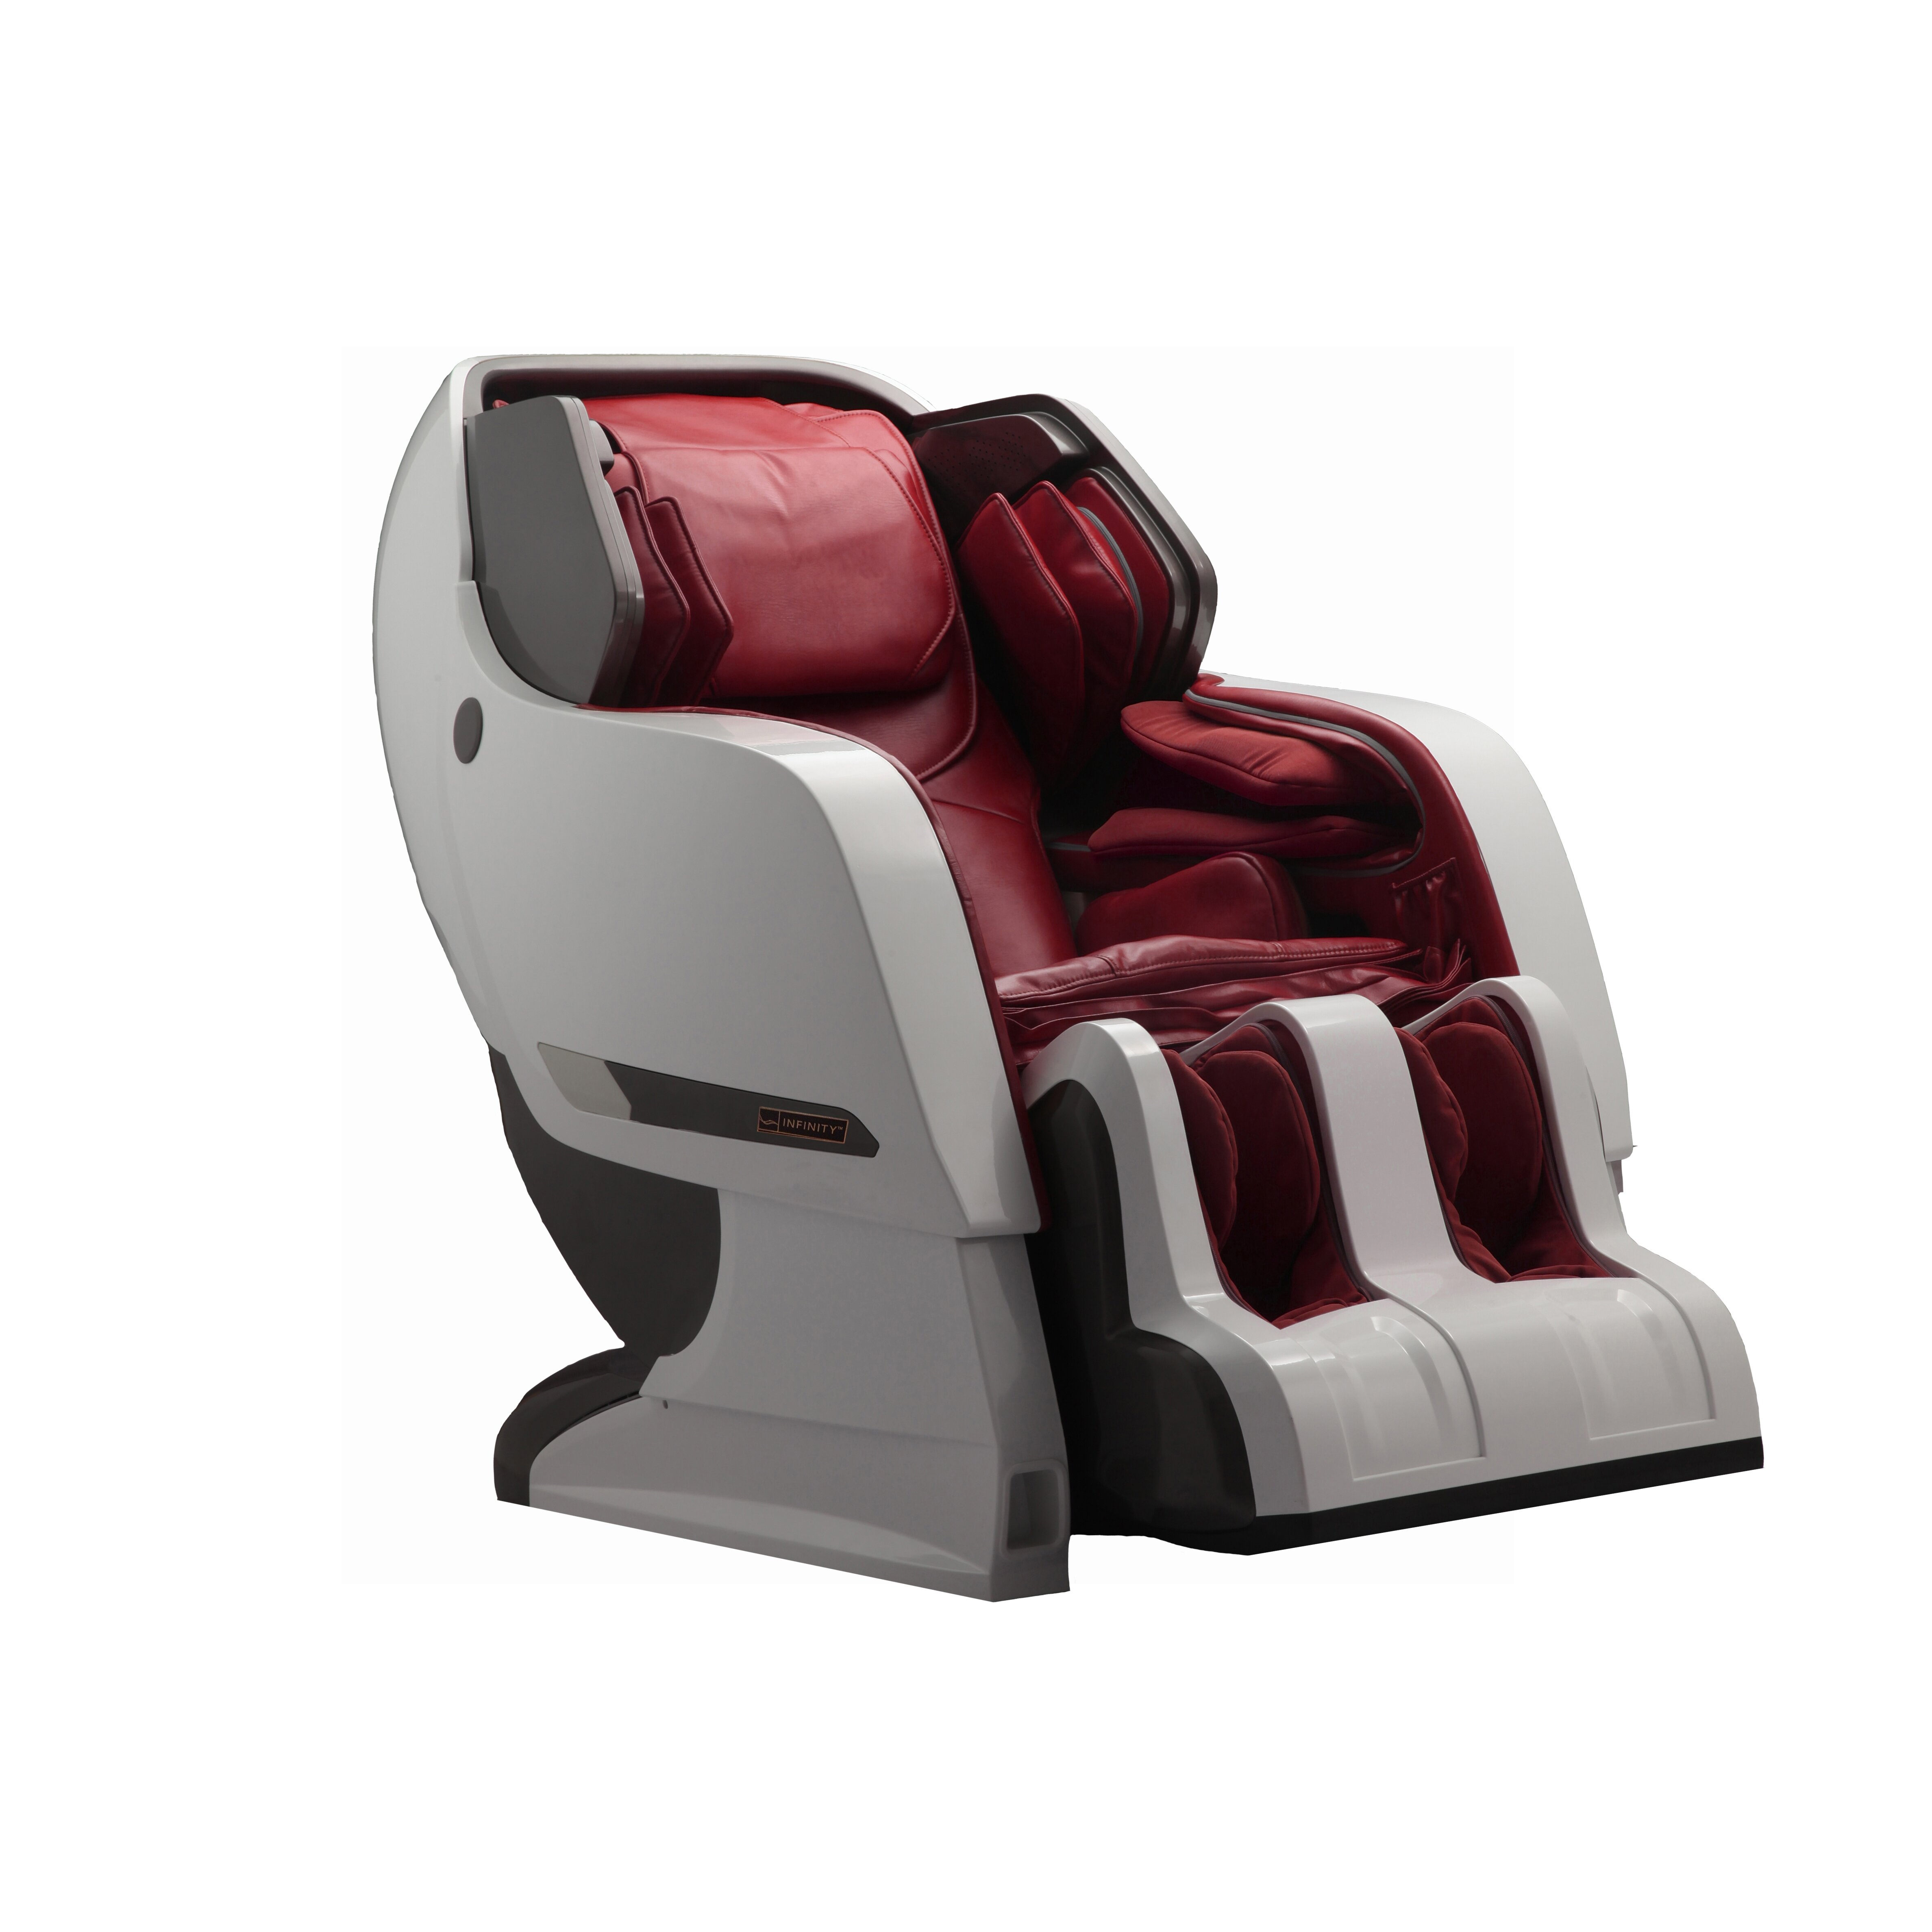 Infinity Infinity IT Iyashi PU Leather Reclining Massage Chair Reviews